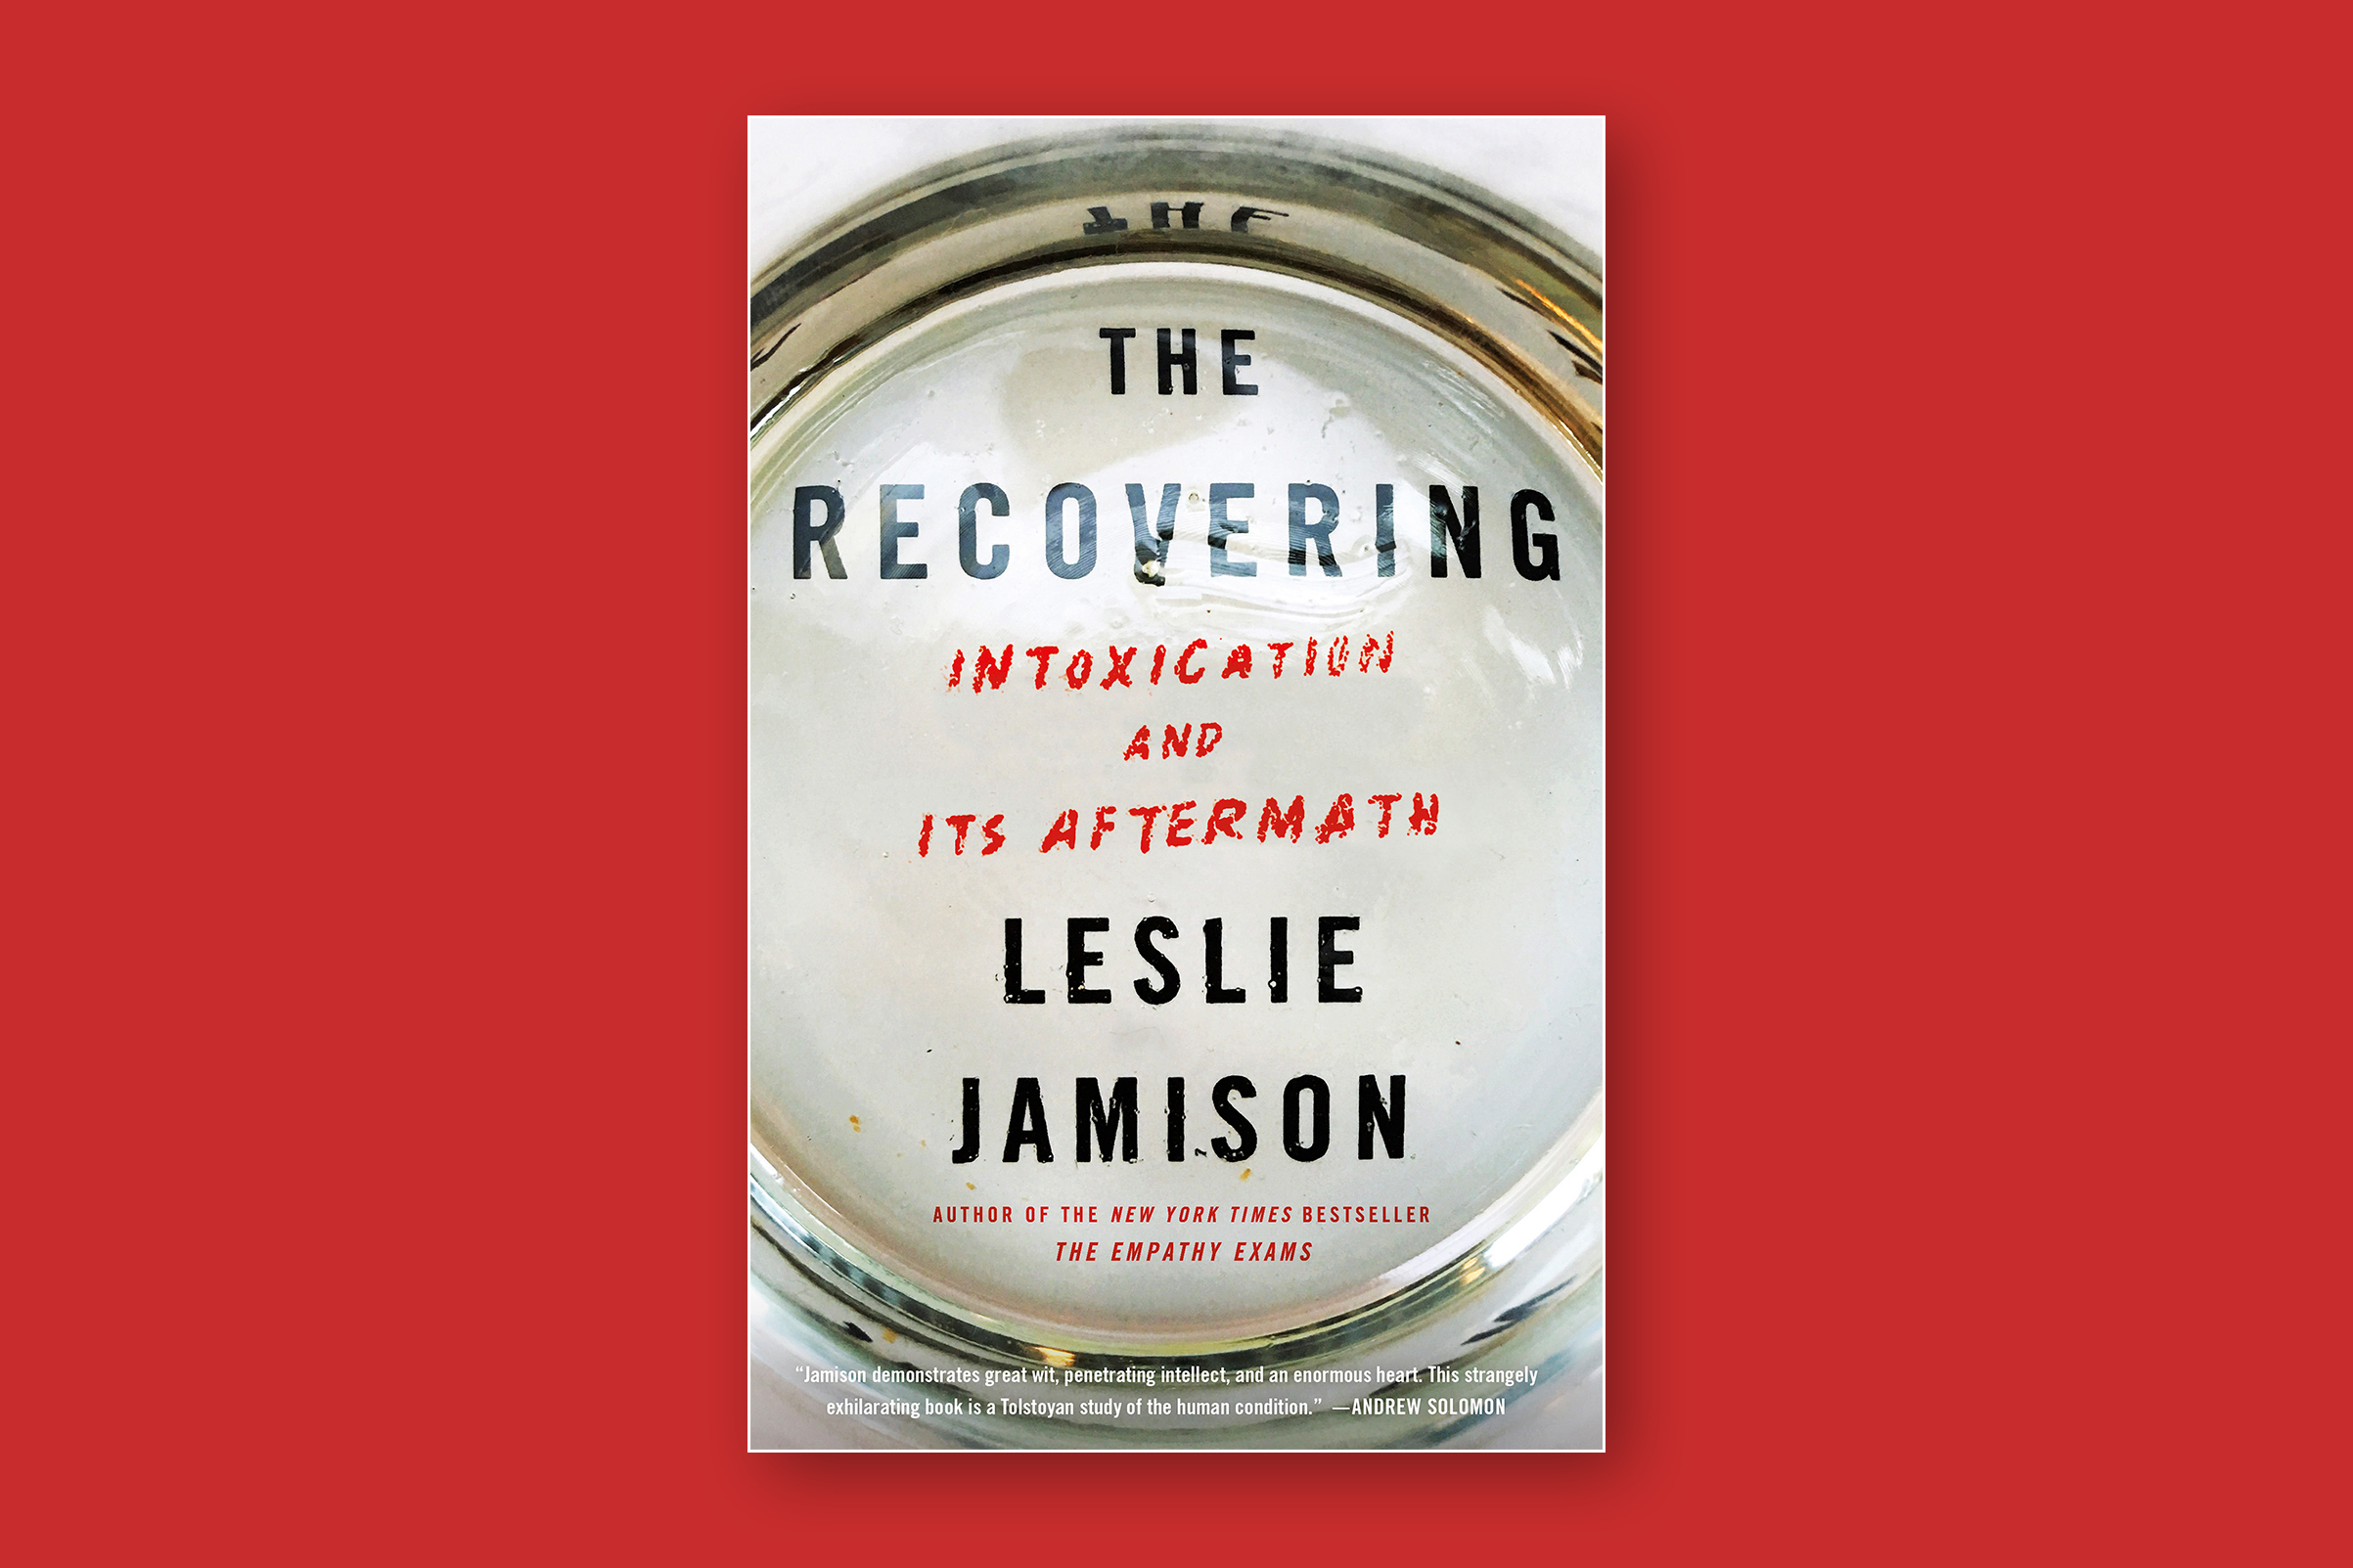 Leslie Jamison's The Recovering: Intoxication and It's Aftermath